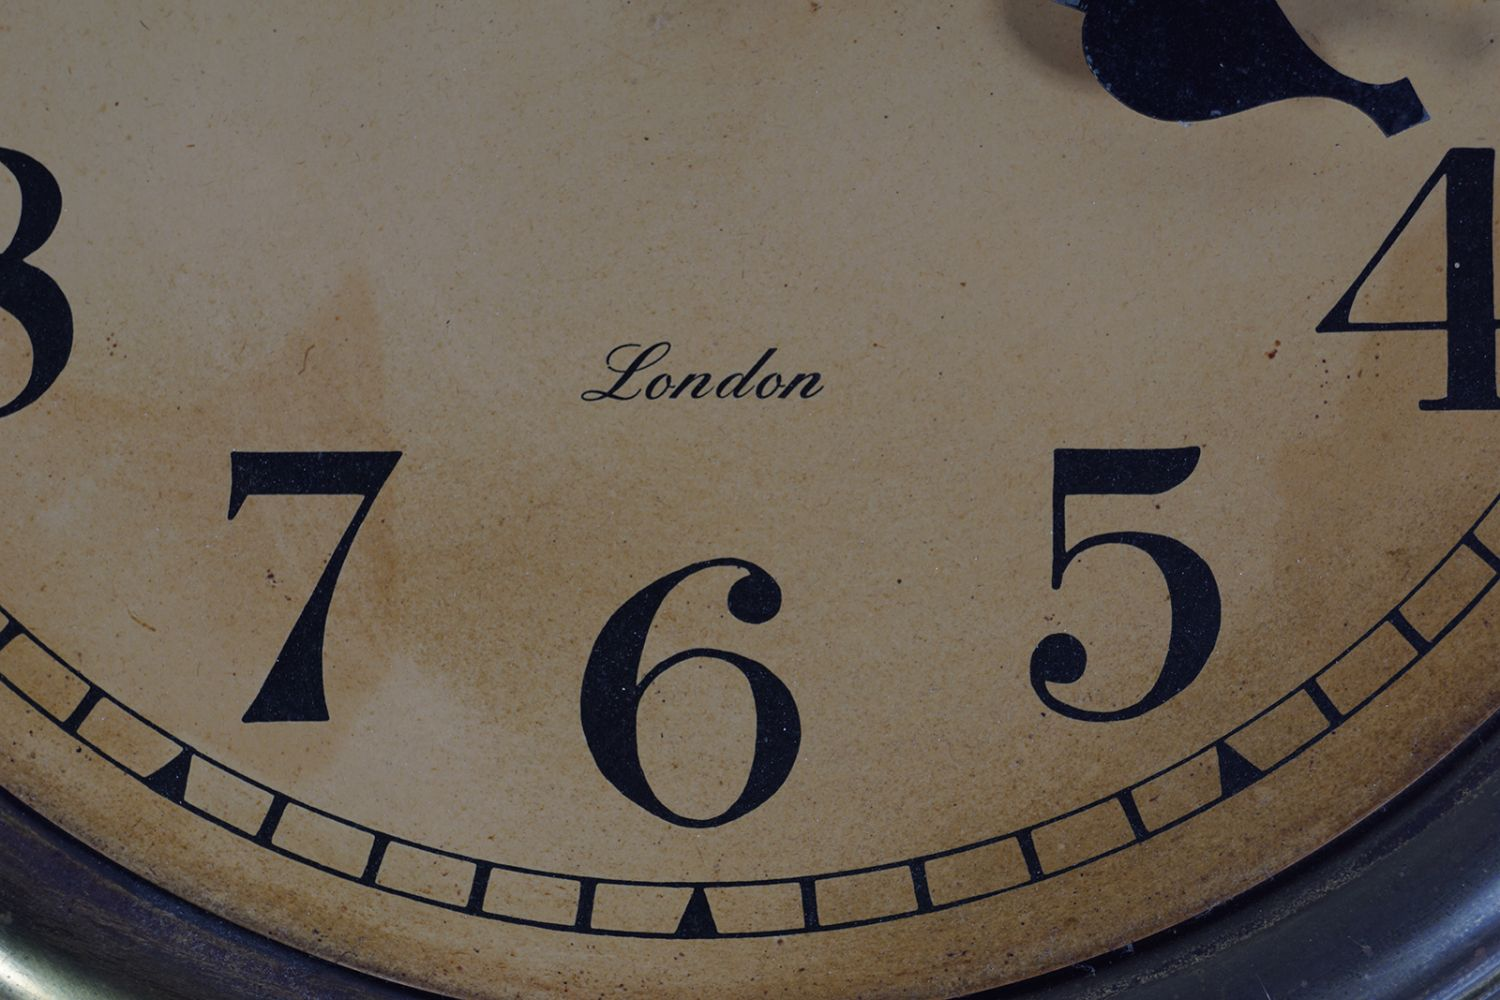 CHRISTOPHER WRAY BRASS CASED CLOCK - Image 3 of 5